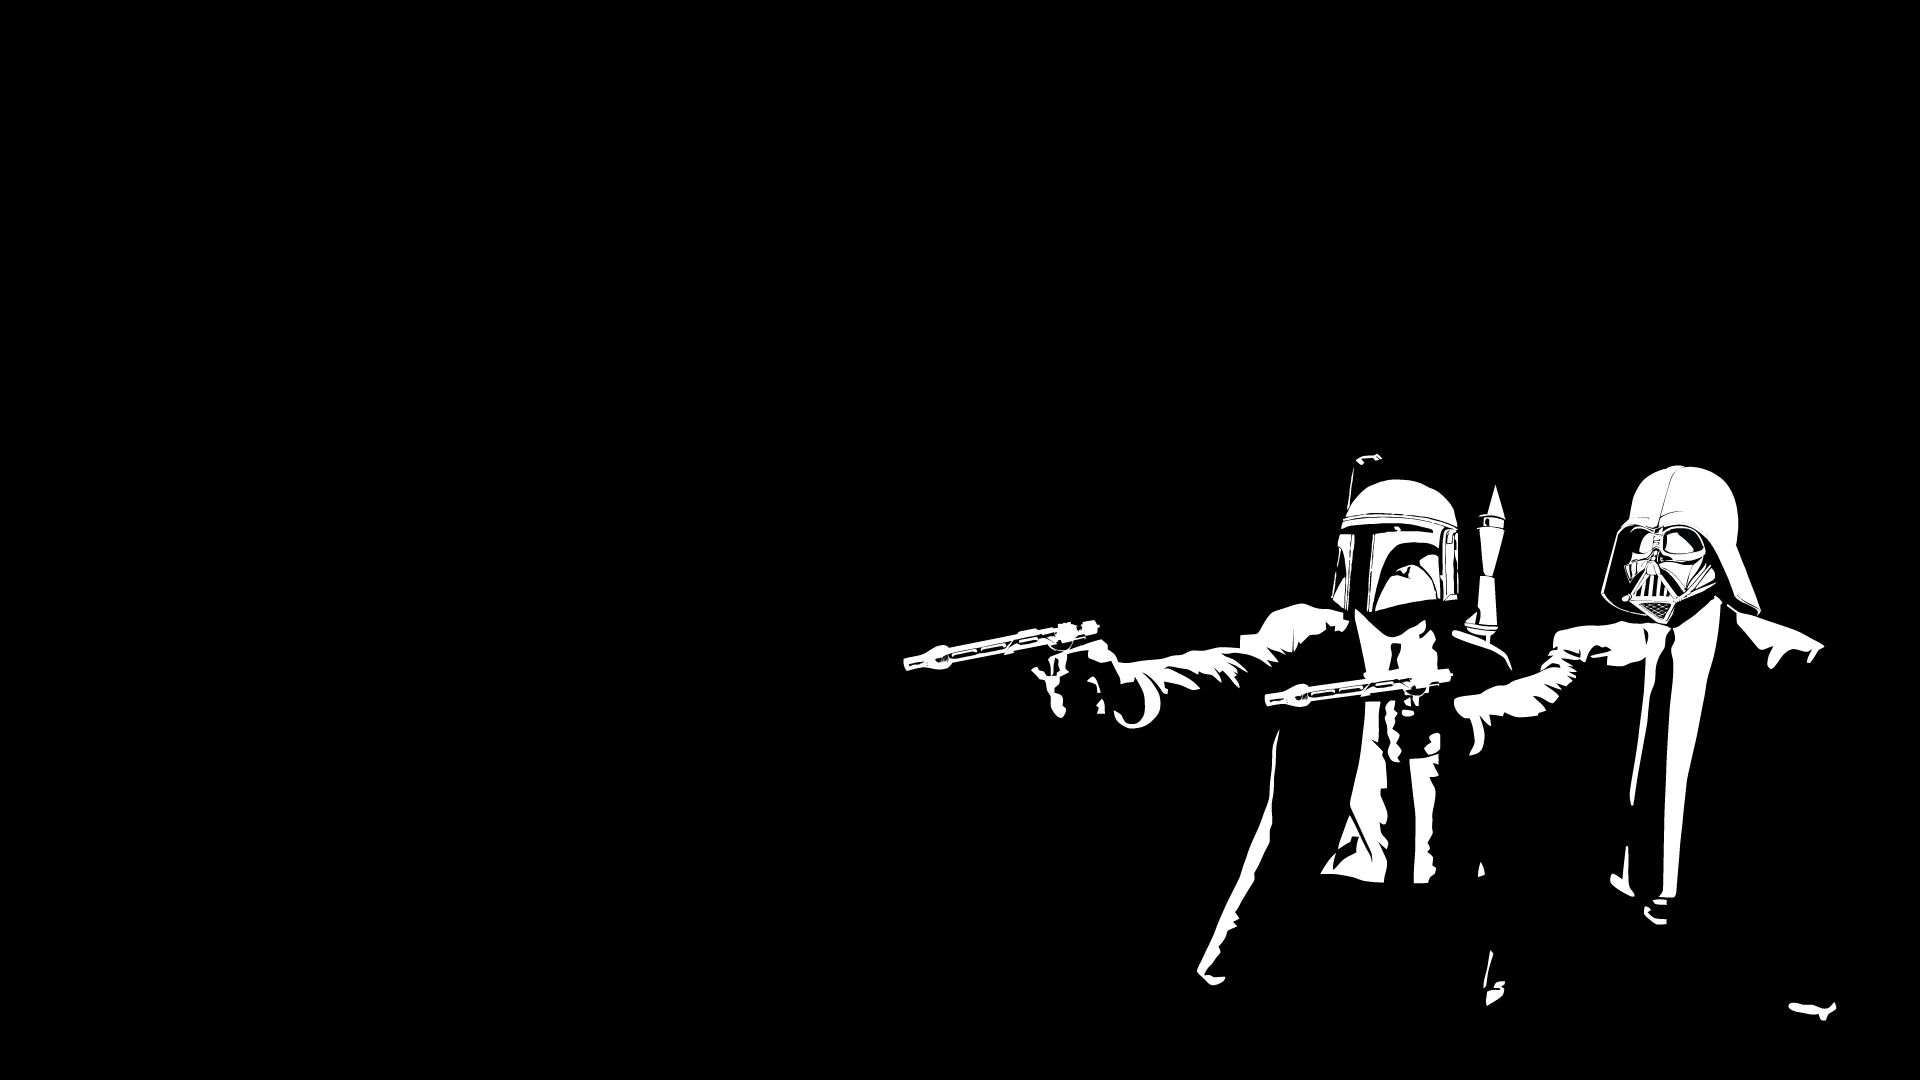 Star Wars And Pulp Fiction Anyone Star Wars Wallpaper Background Hd Wallpaper Awesome Star Wars Art